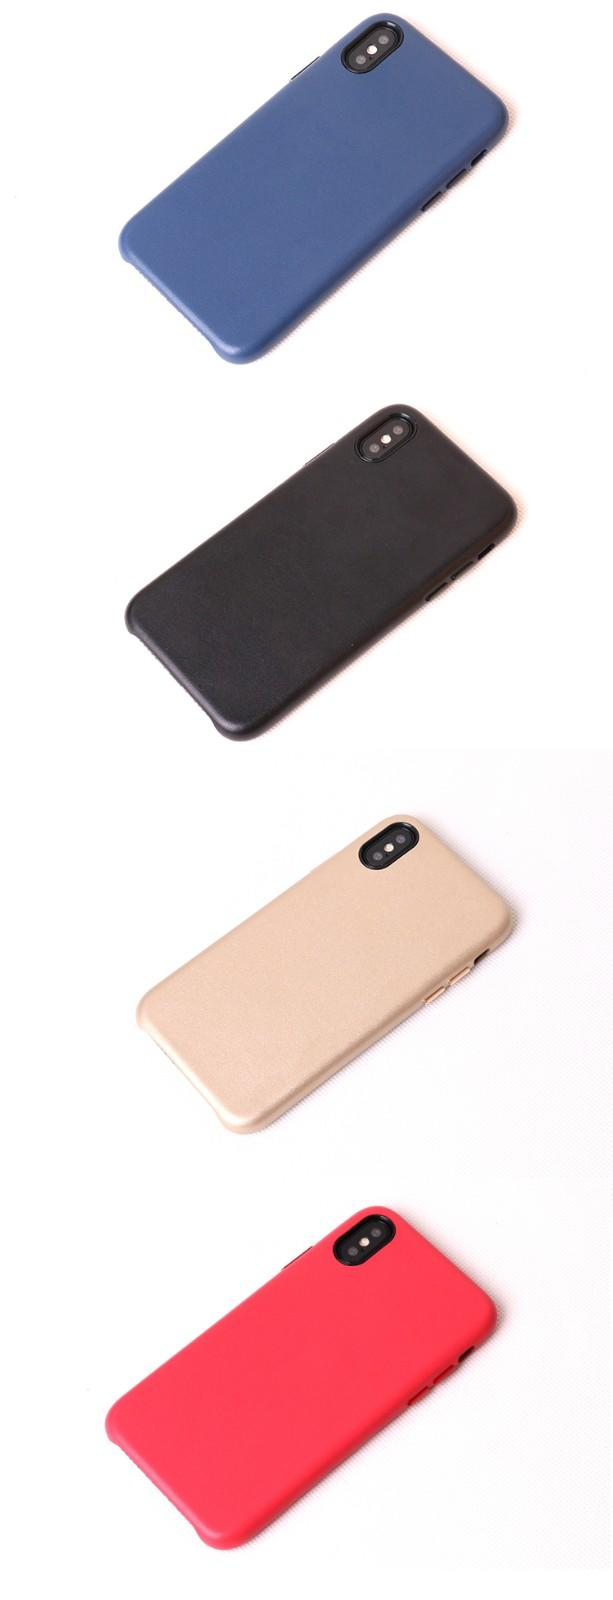 Vserstore colors iphone hard case on sale for iphone